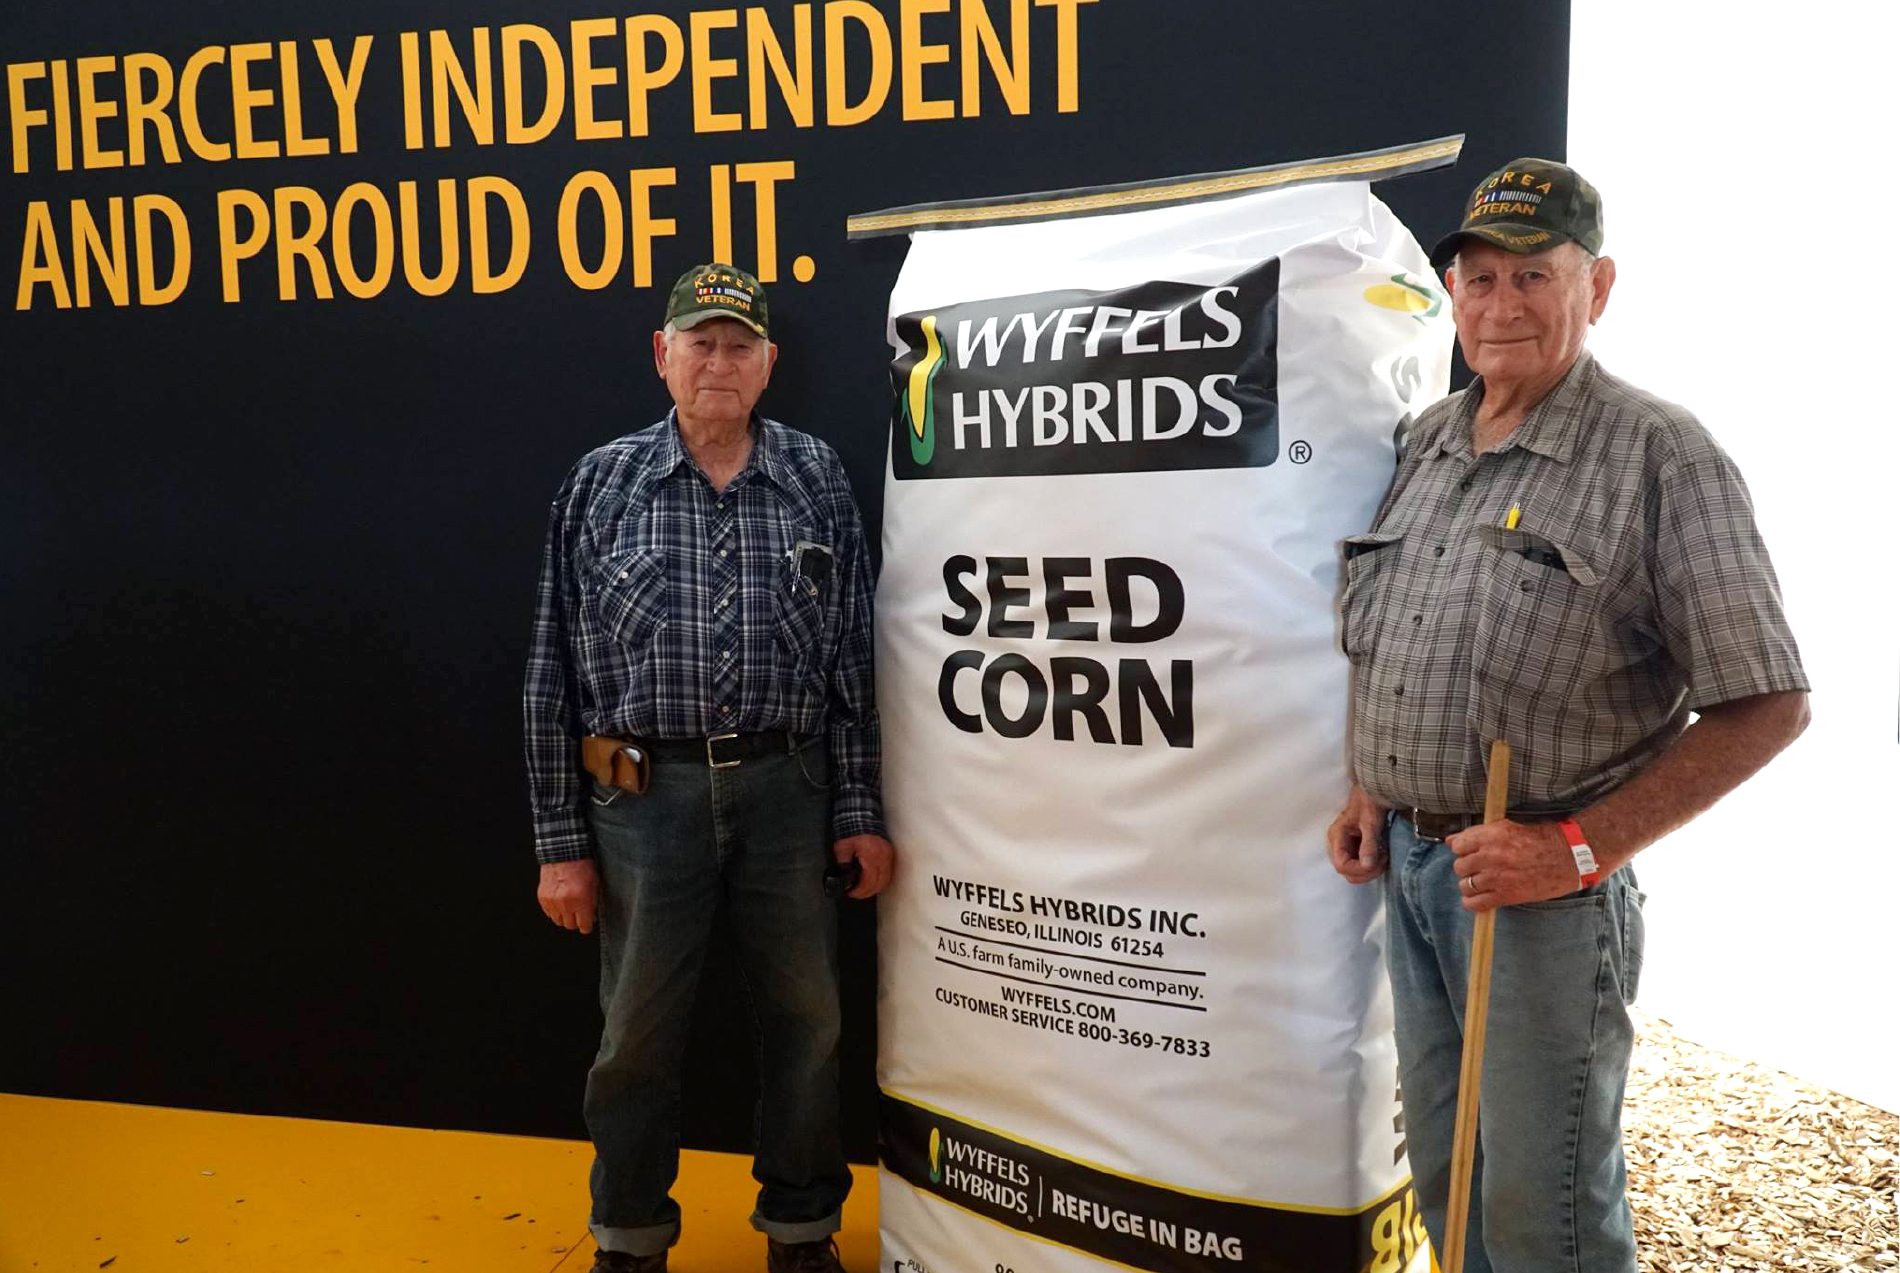 Wyffels Hybrids Independents Day